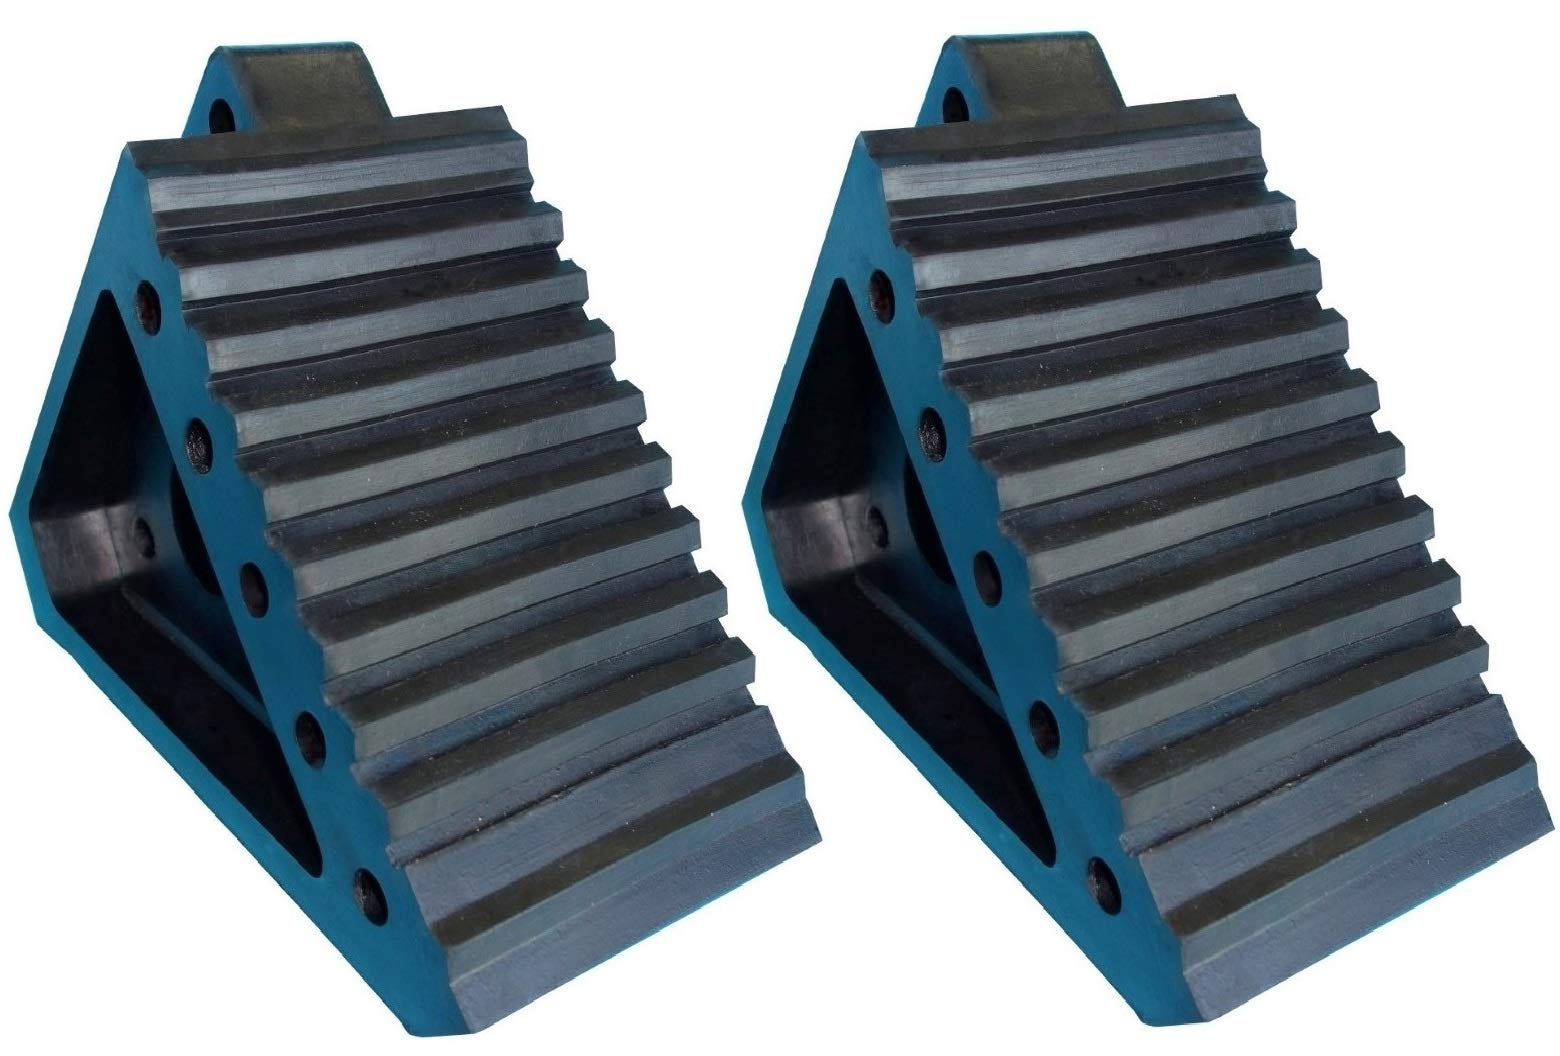 YM W4194 Solid Rubber Wheel Chock with Handle, 8-3/4'' Length, 4'' Width, 6'' Height - Pack of 2 by YM